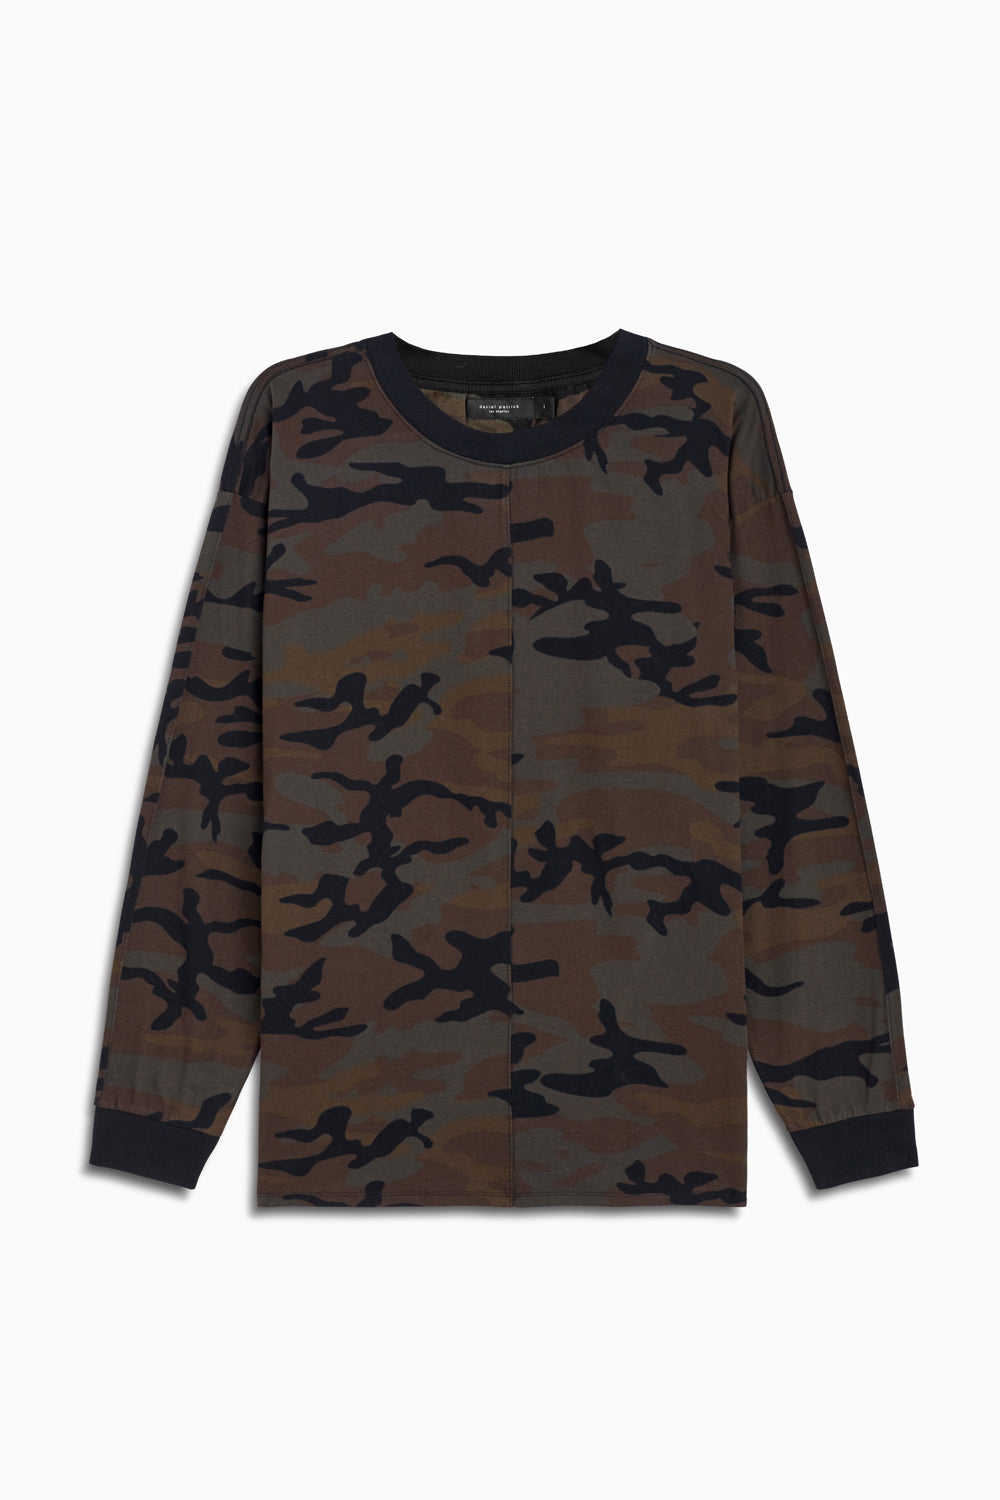 l/s crew iii in dark camo by daniel patrick